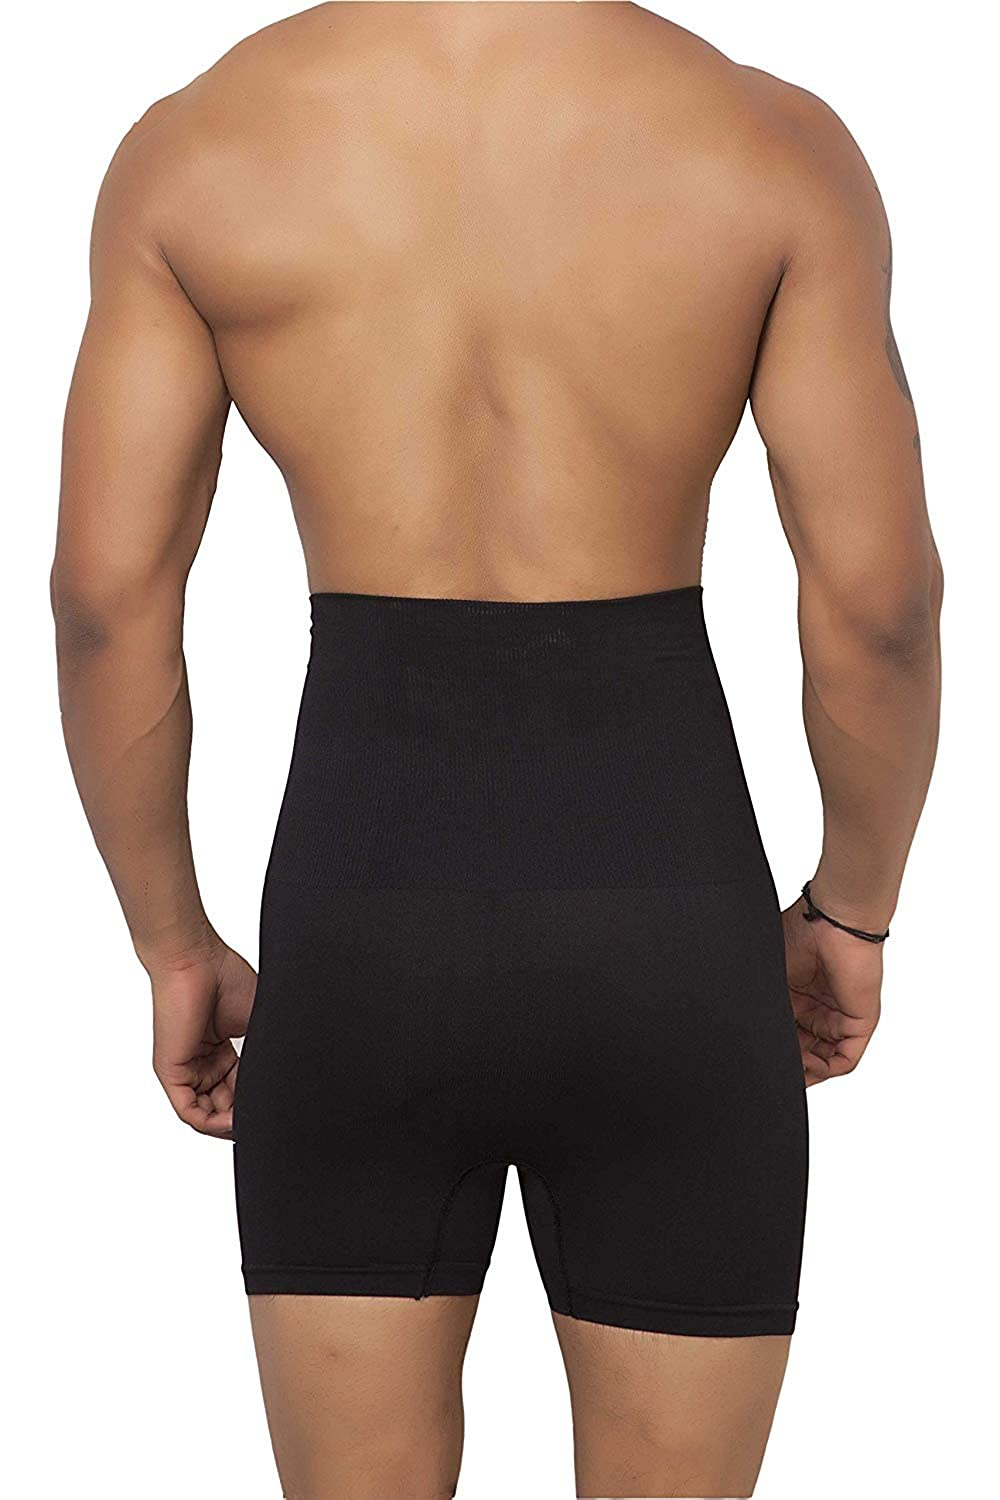 d95433cb4 Aaqar Man Tummy and Thigh Shaper  Amazon.in  Clothing   Accessories